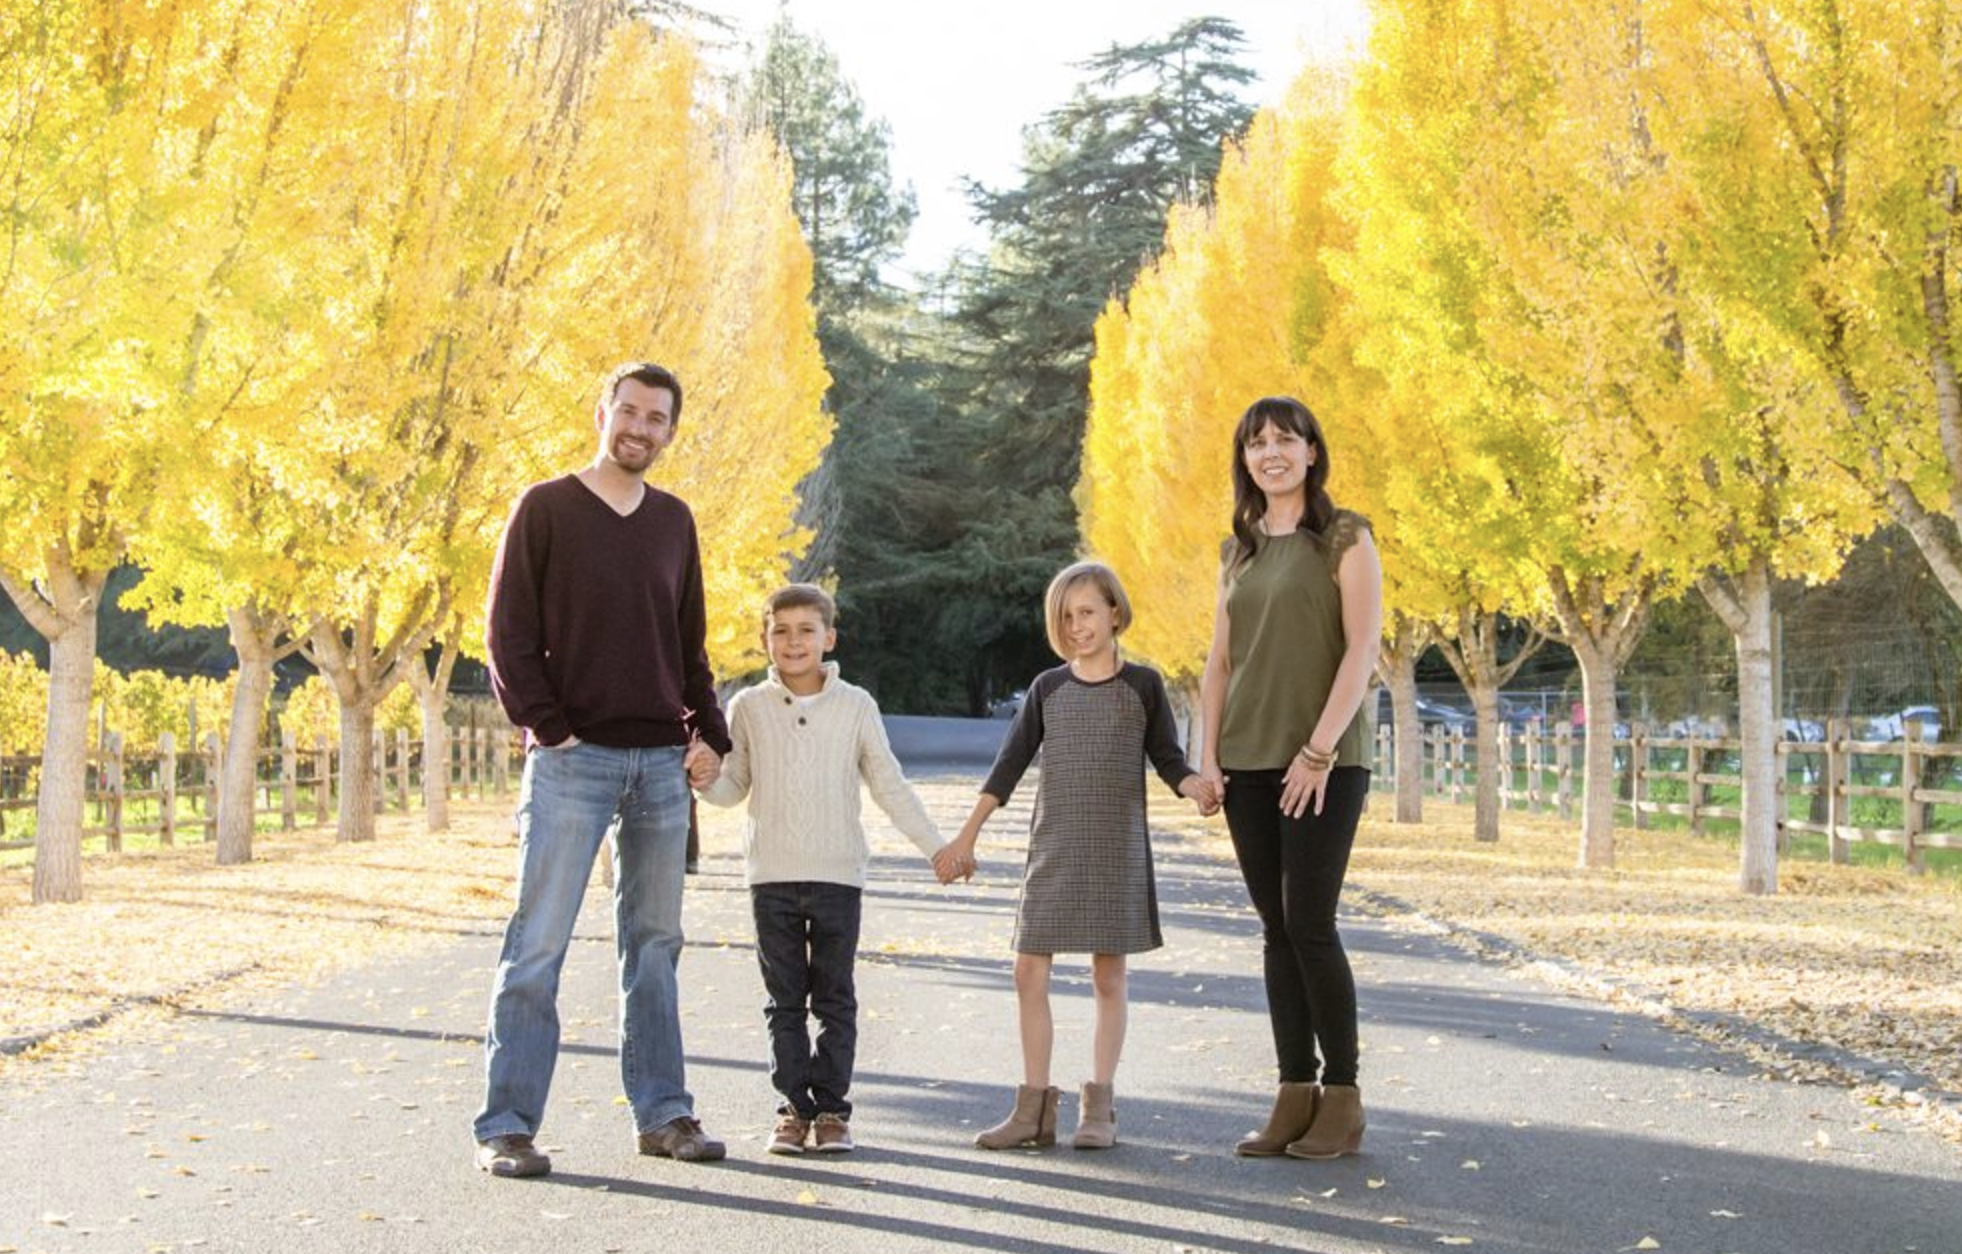 Stephanie Emerson is a thirteen year resident of California's fourth Congressional district and is dedicated to supporting a qualified candidate to represent all of our constituents. She is a devoted wife, a mother of two school-age children, and a first grade teacher.